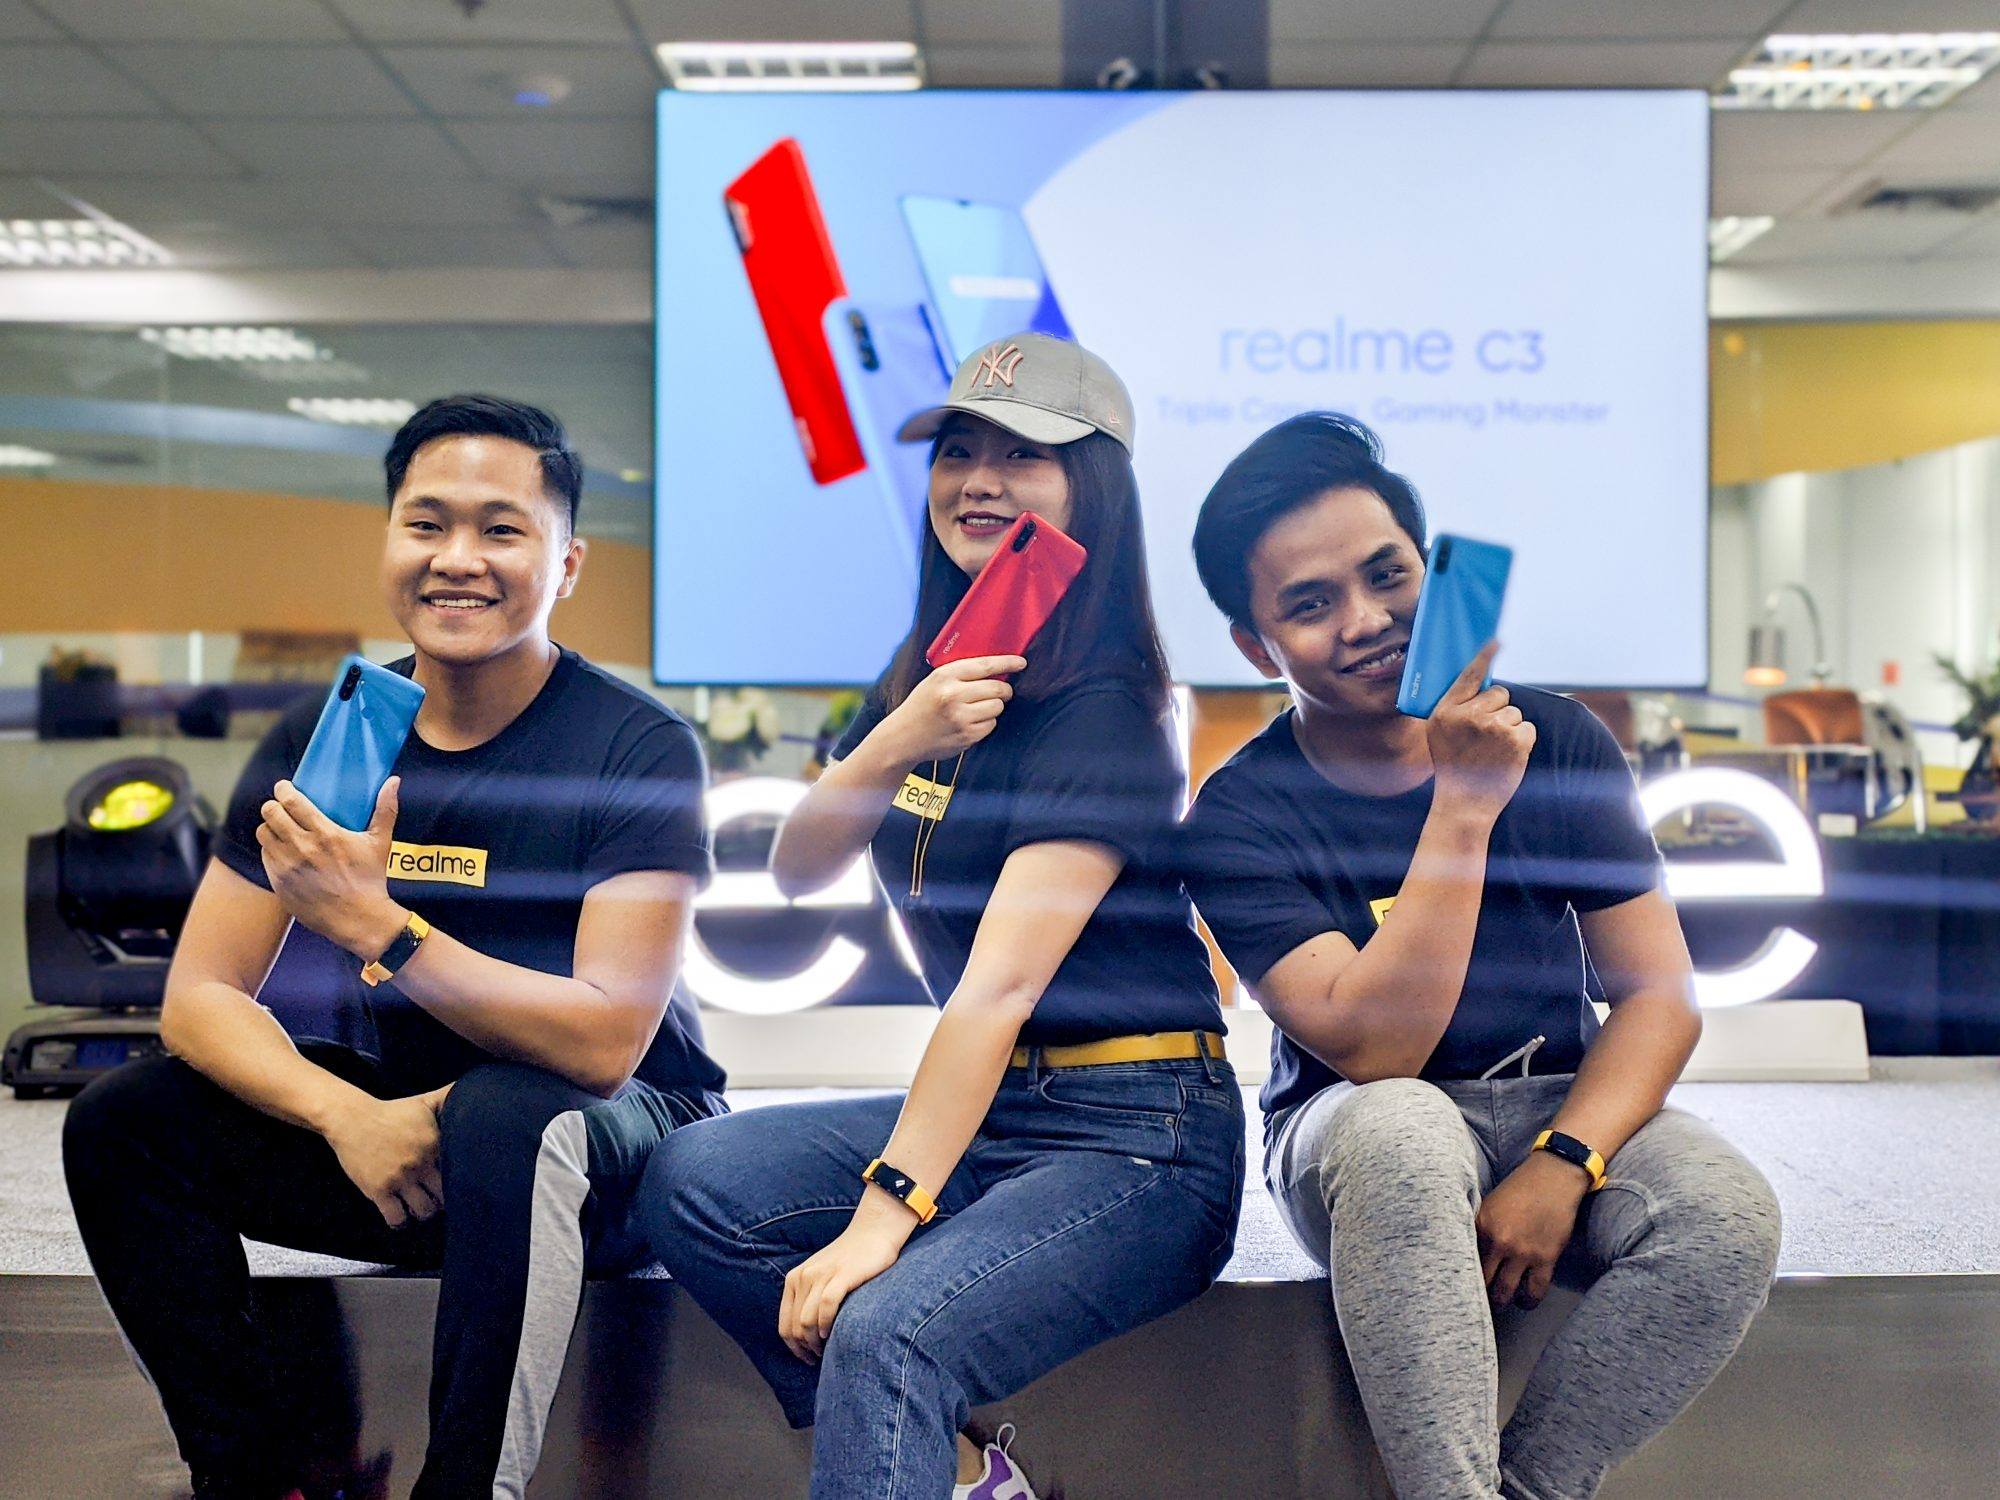 Eason de Guzman, Austine Huang, and Anthony So at the realme C3 launch in the Philippines